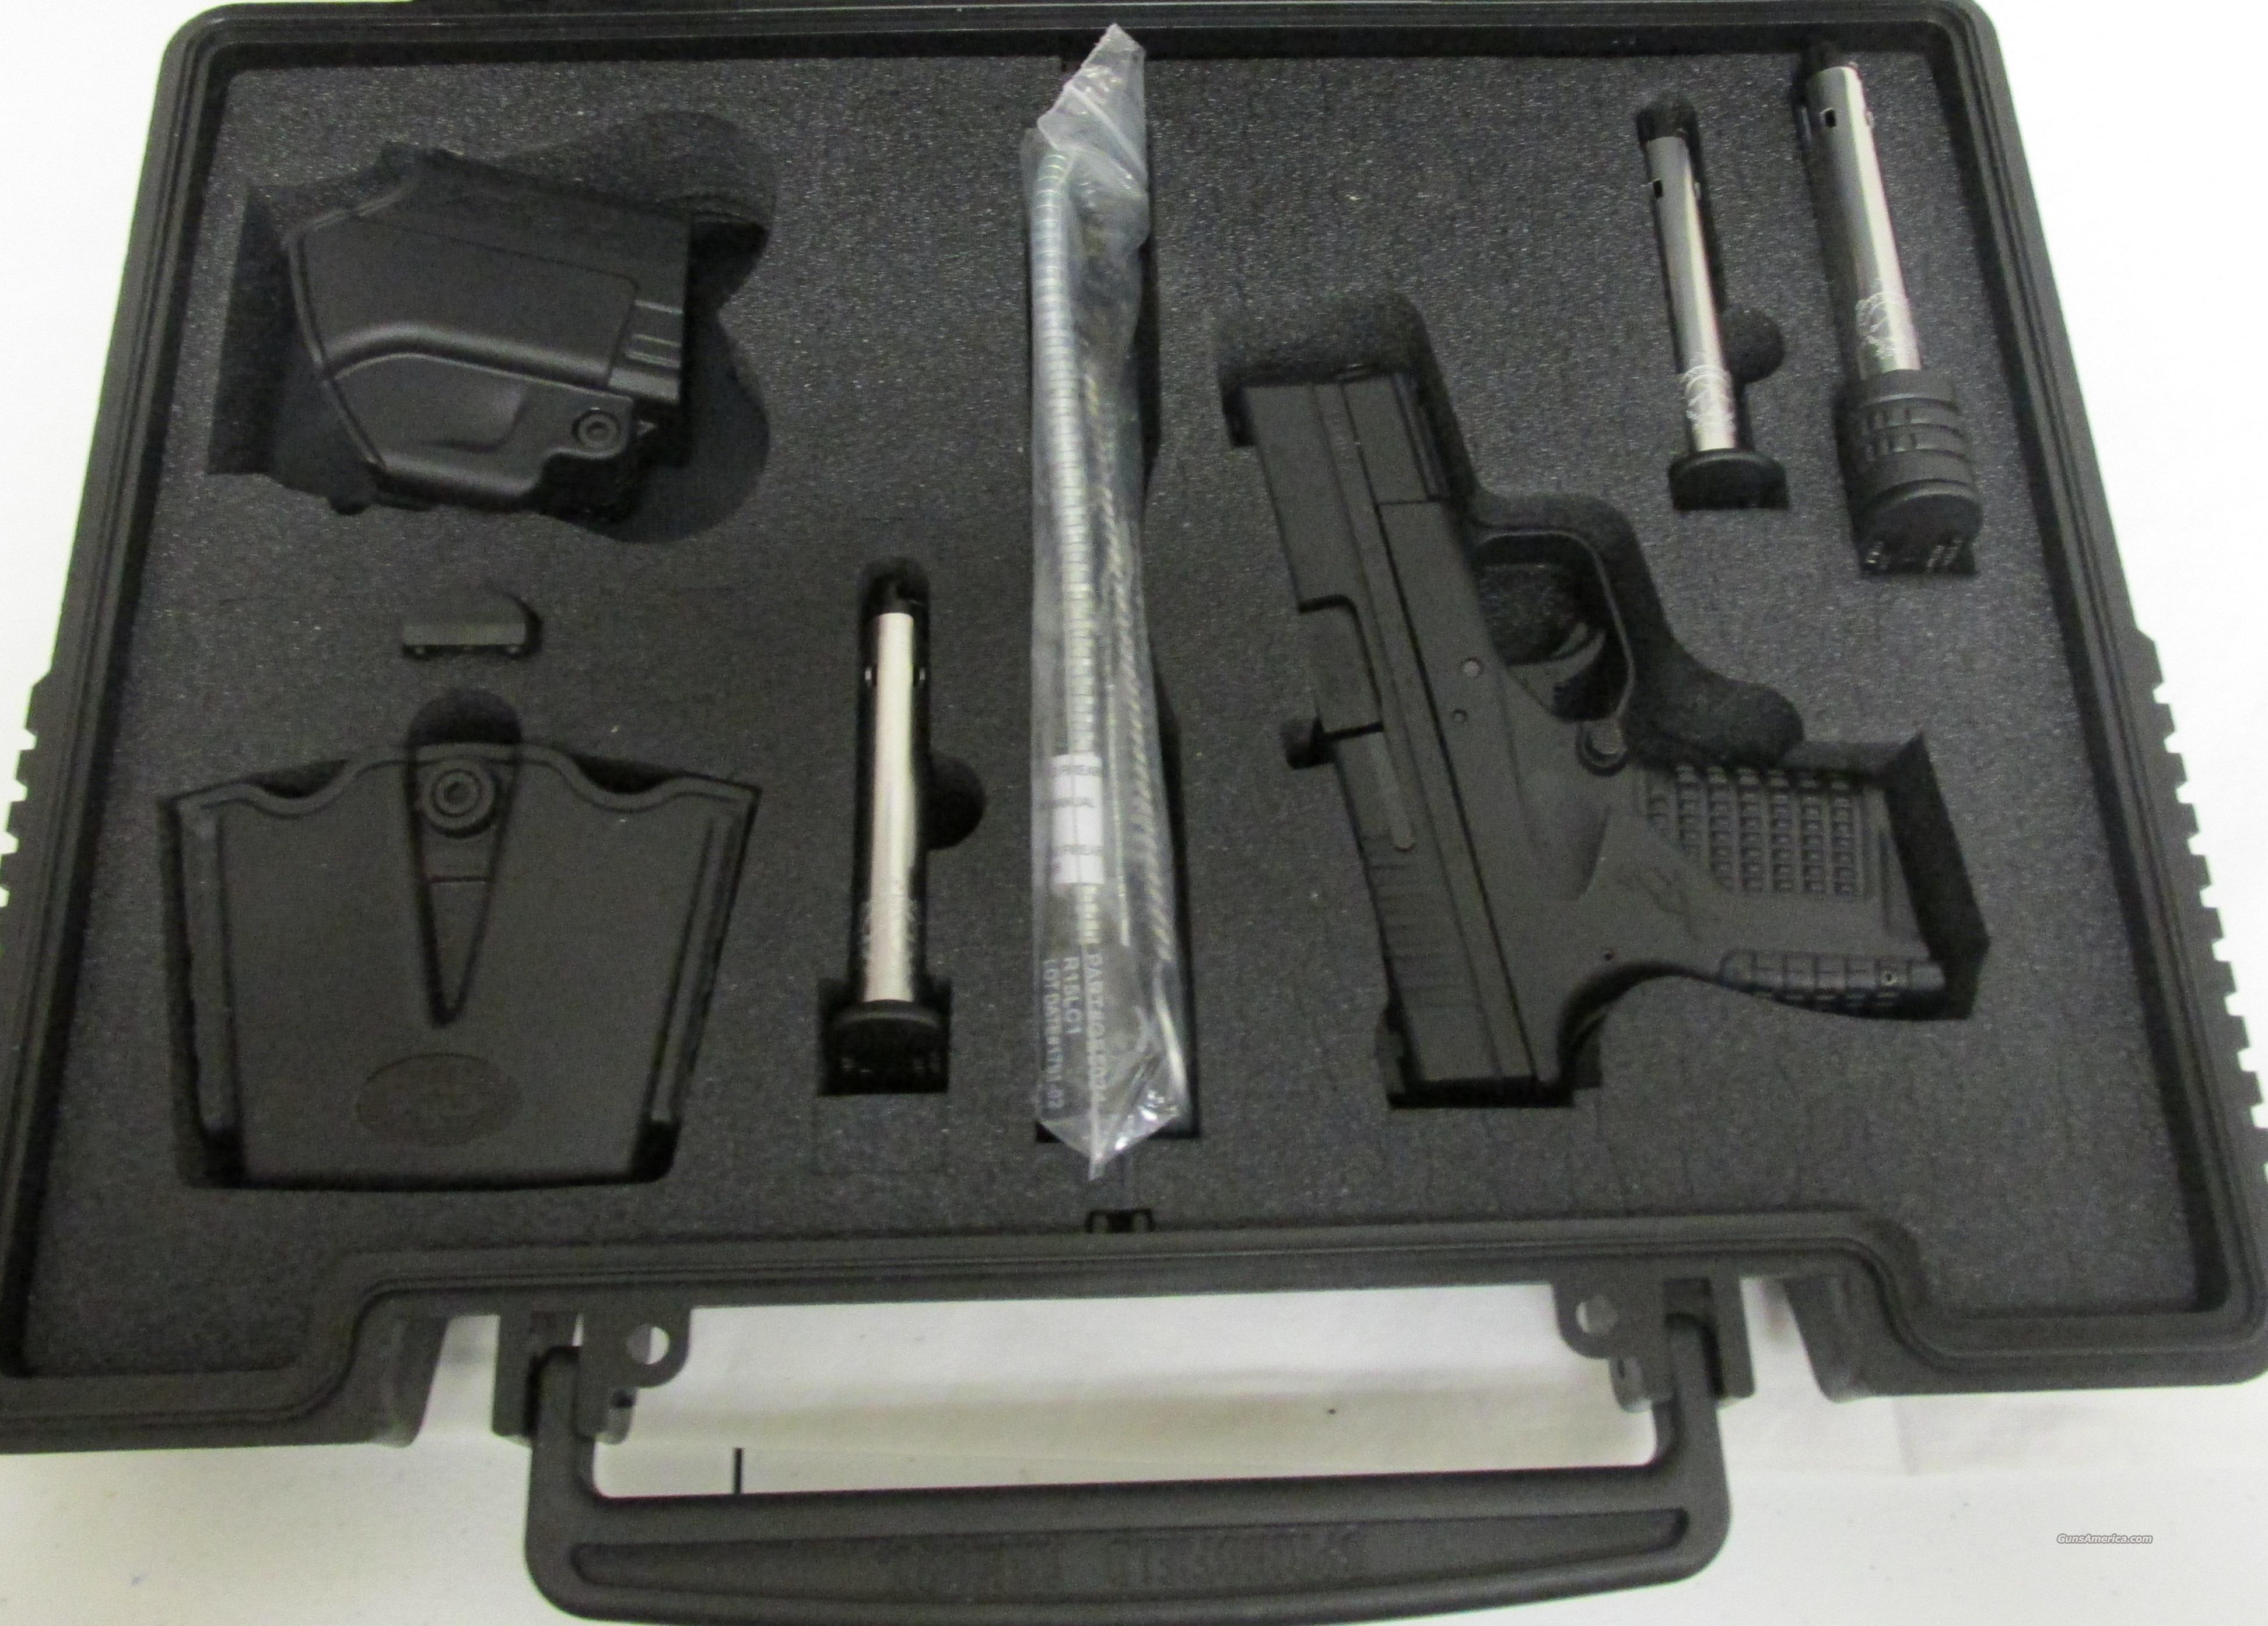 Springfield XDS XD-S 9mm (Upgraded) 3 magazines Save Some Money  Guns > Pistols > Springfield Armory Pistols > XD-S